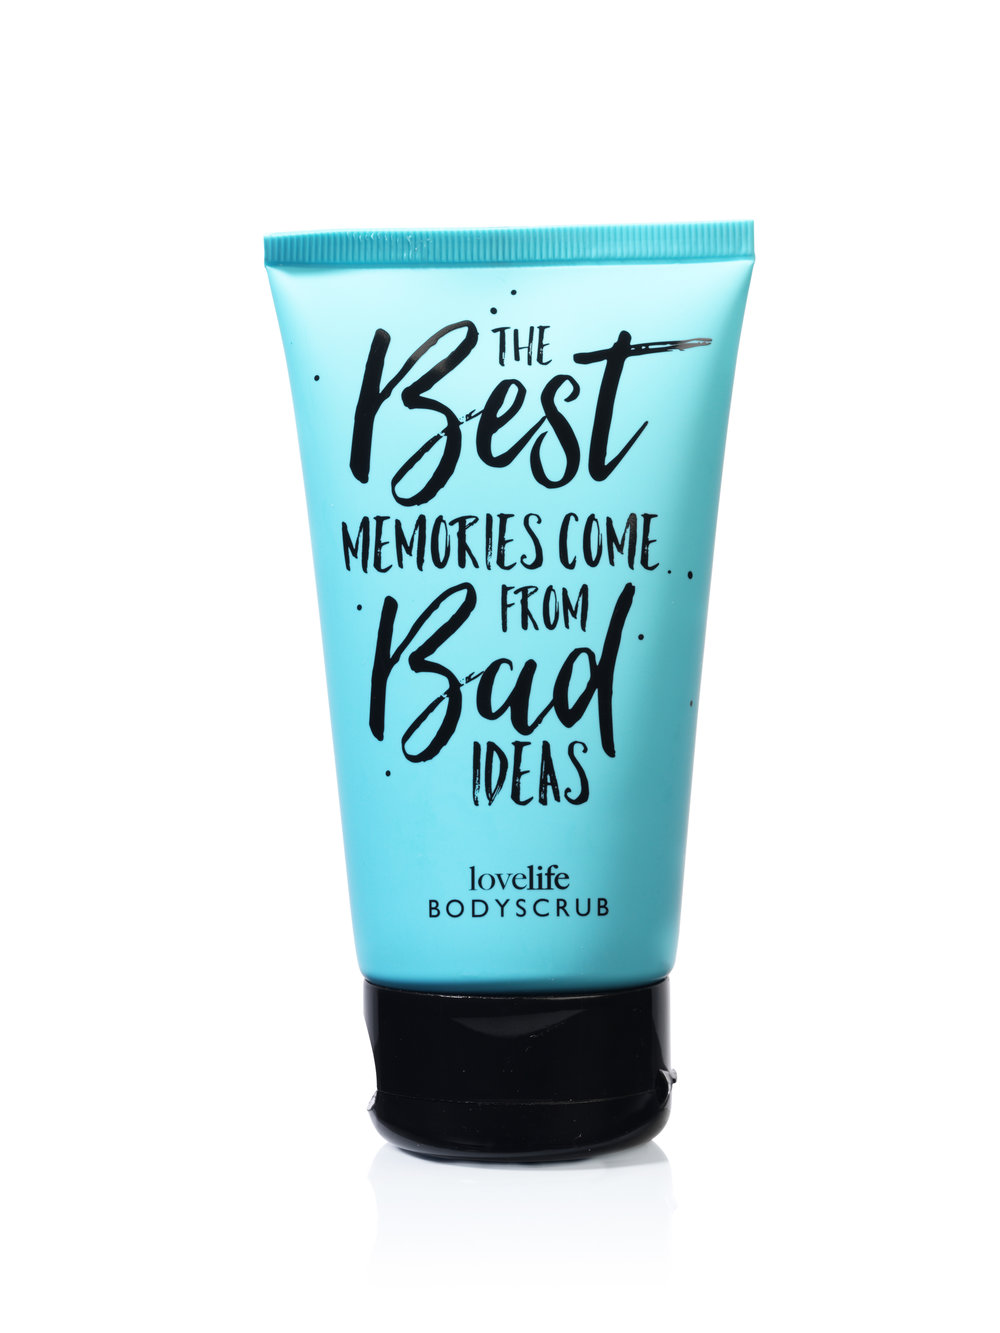 Lovelife Blue Bodyscrub Scrub The Best Memories Come From Bad Ideas